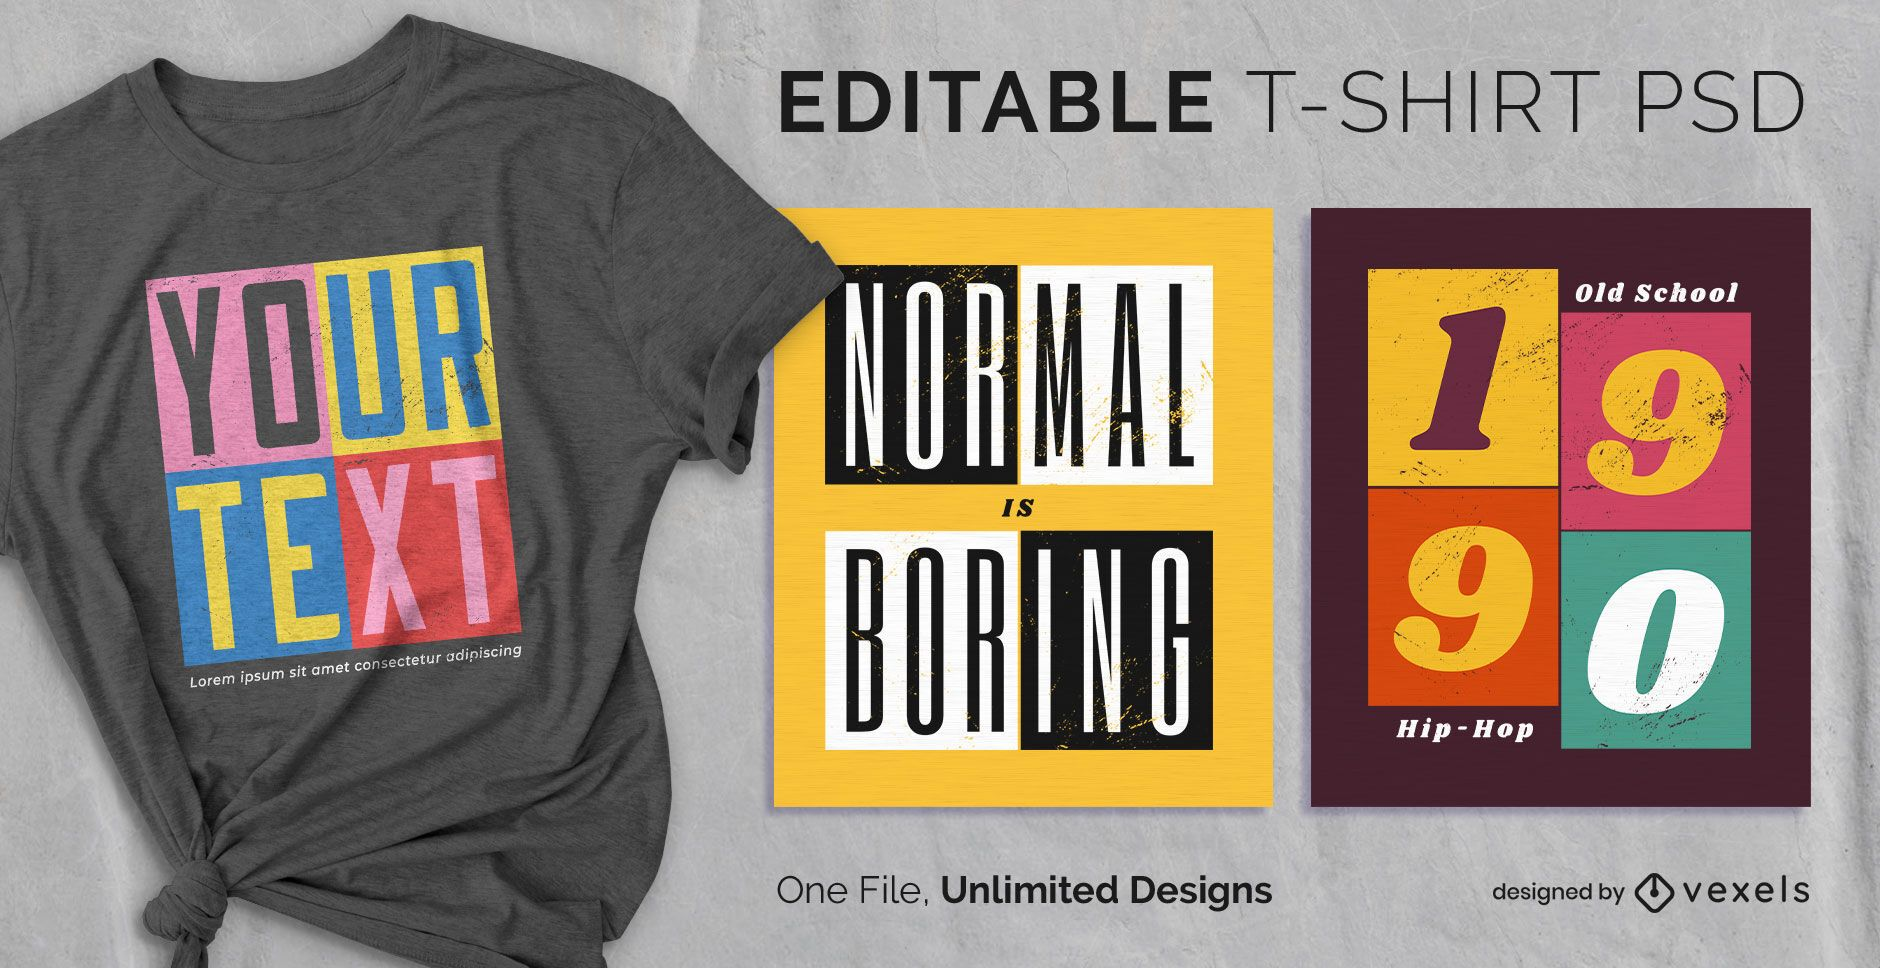 Square panels scalable t-shirt psd